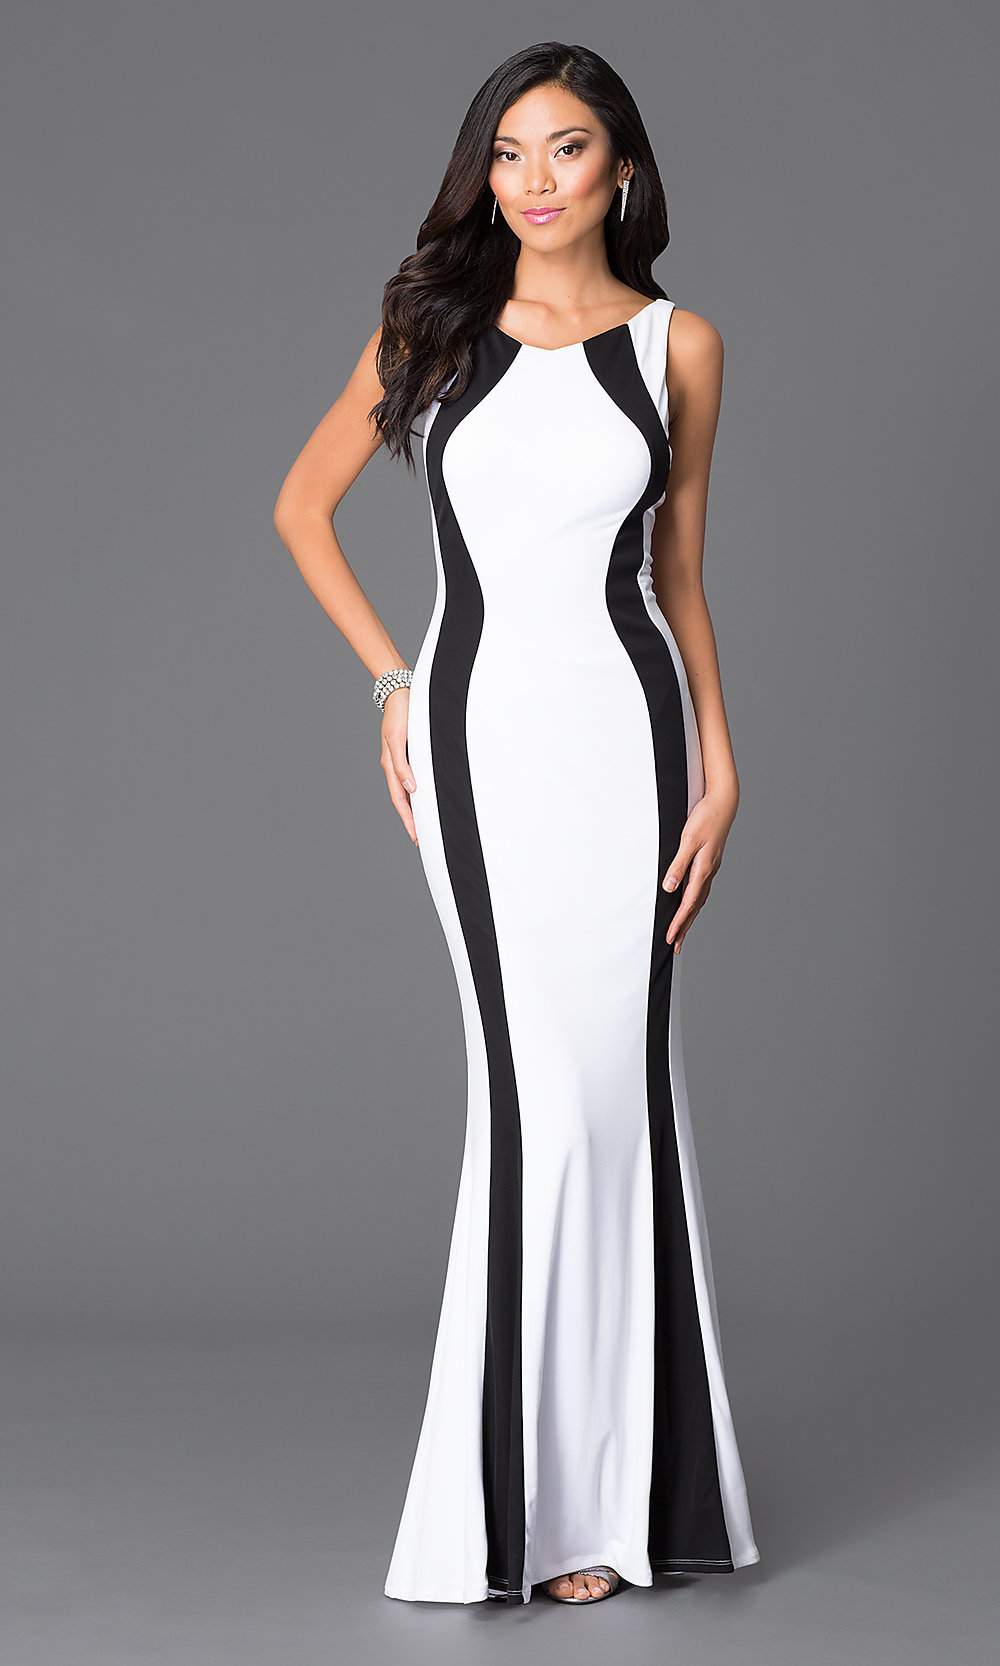 White Prom Dresses - Black Dresses 33